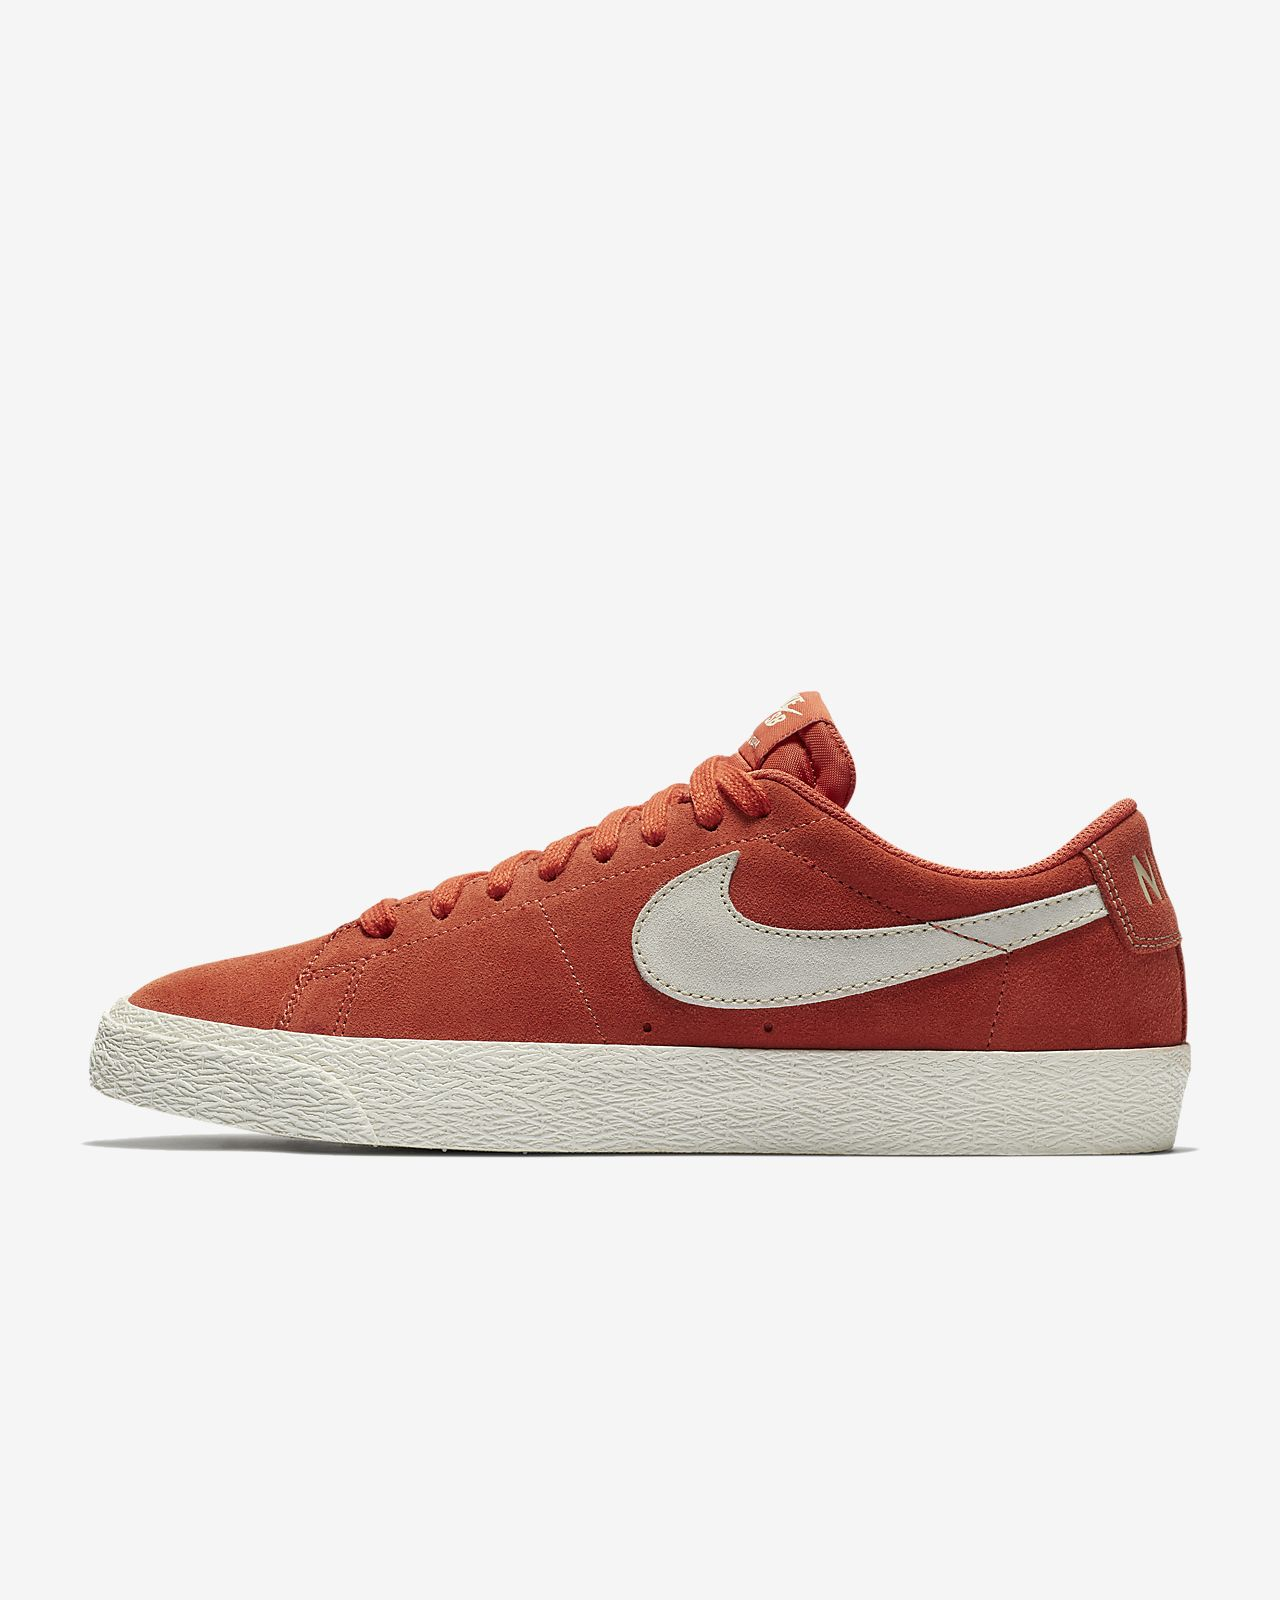 Chaussures De Collection Nike Blanc Taille 36 Hommes LpgIH